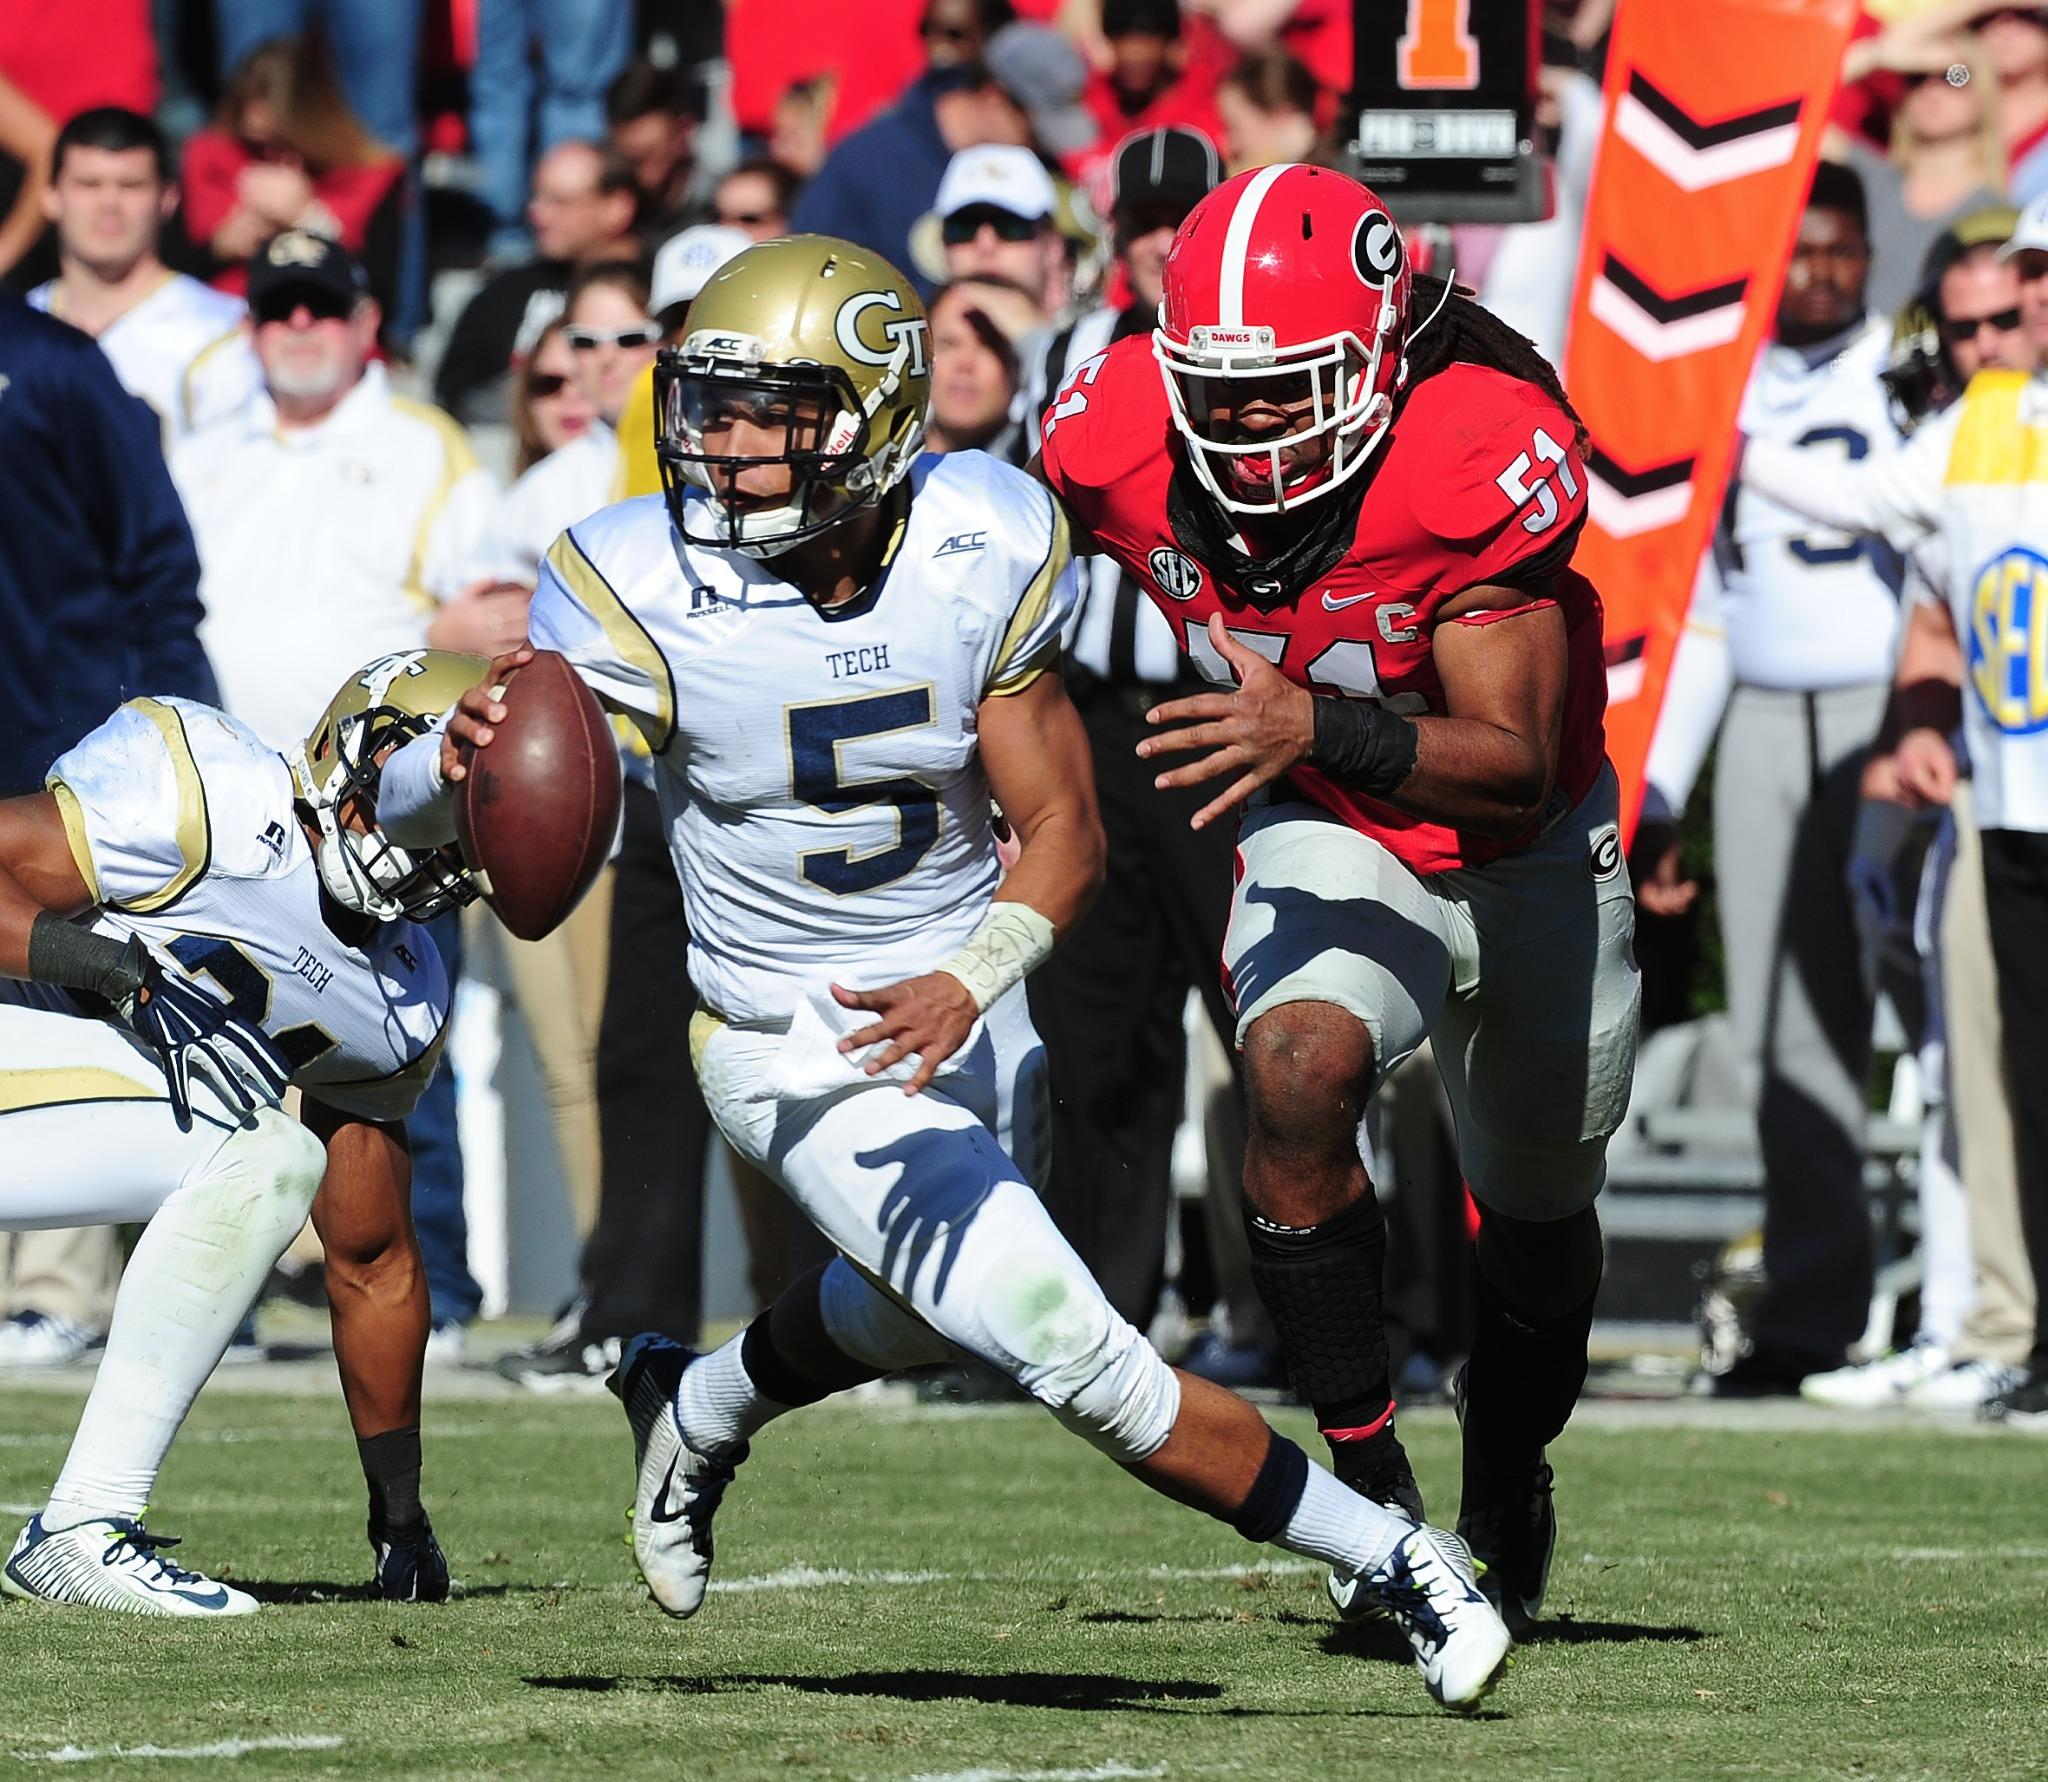 RT @ESPNCFB: #16 Georgia Tech upsets #9 Georgia, 30-24 in OT  Yellow Jackets finished with 399 Rush Yds / 64 Pass Yds  #GTvsUGA http://t.co?